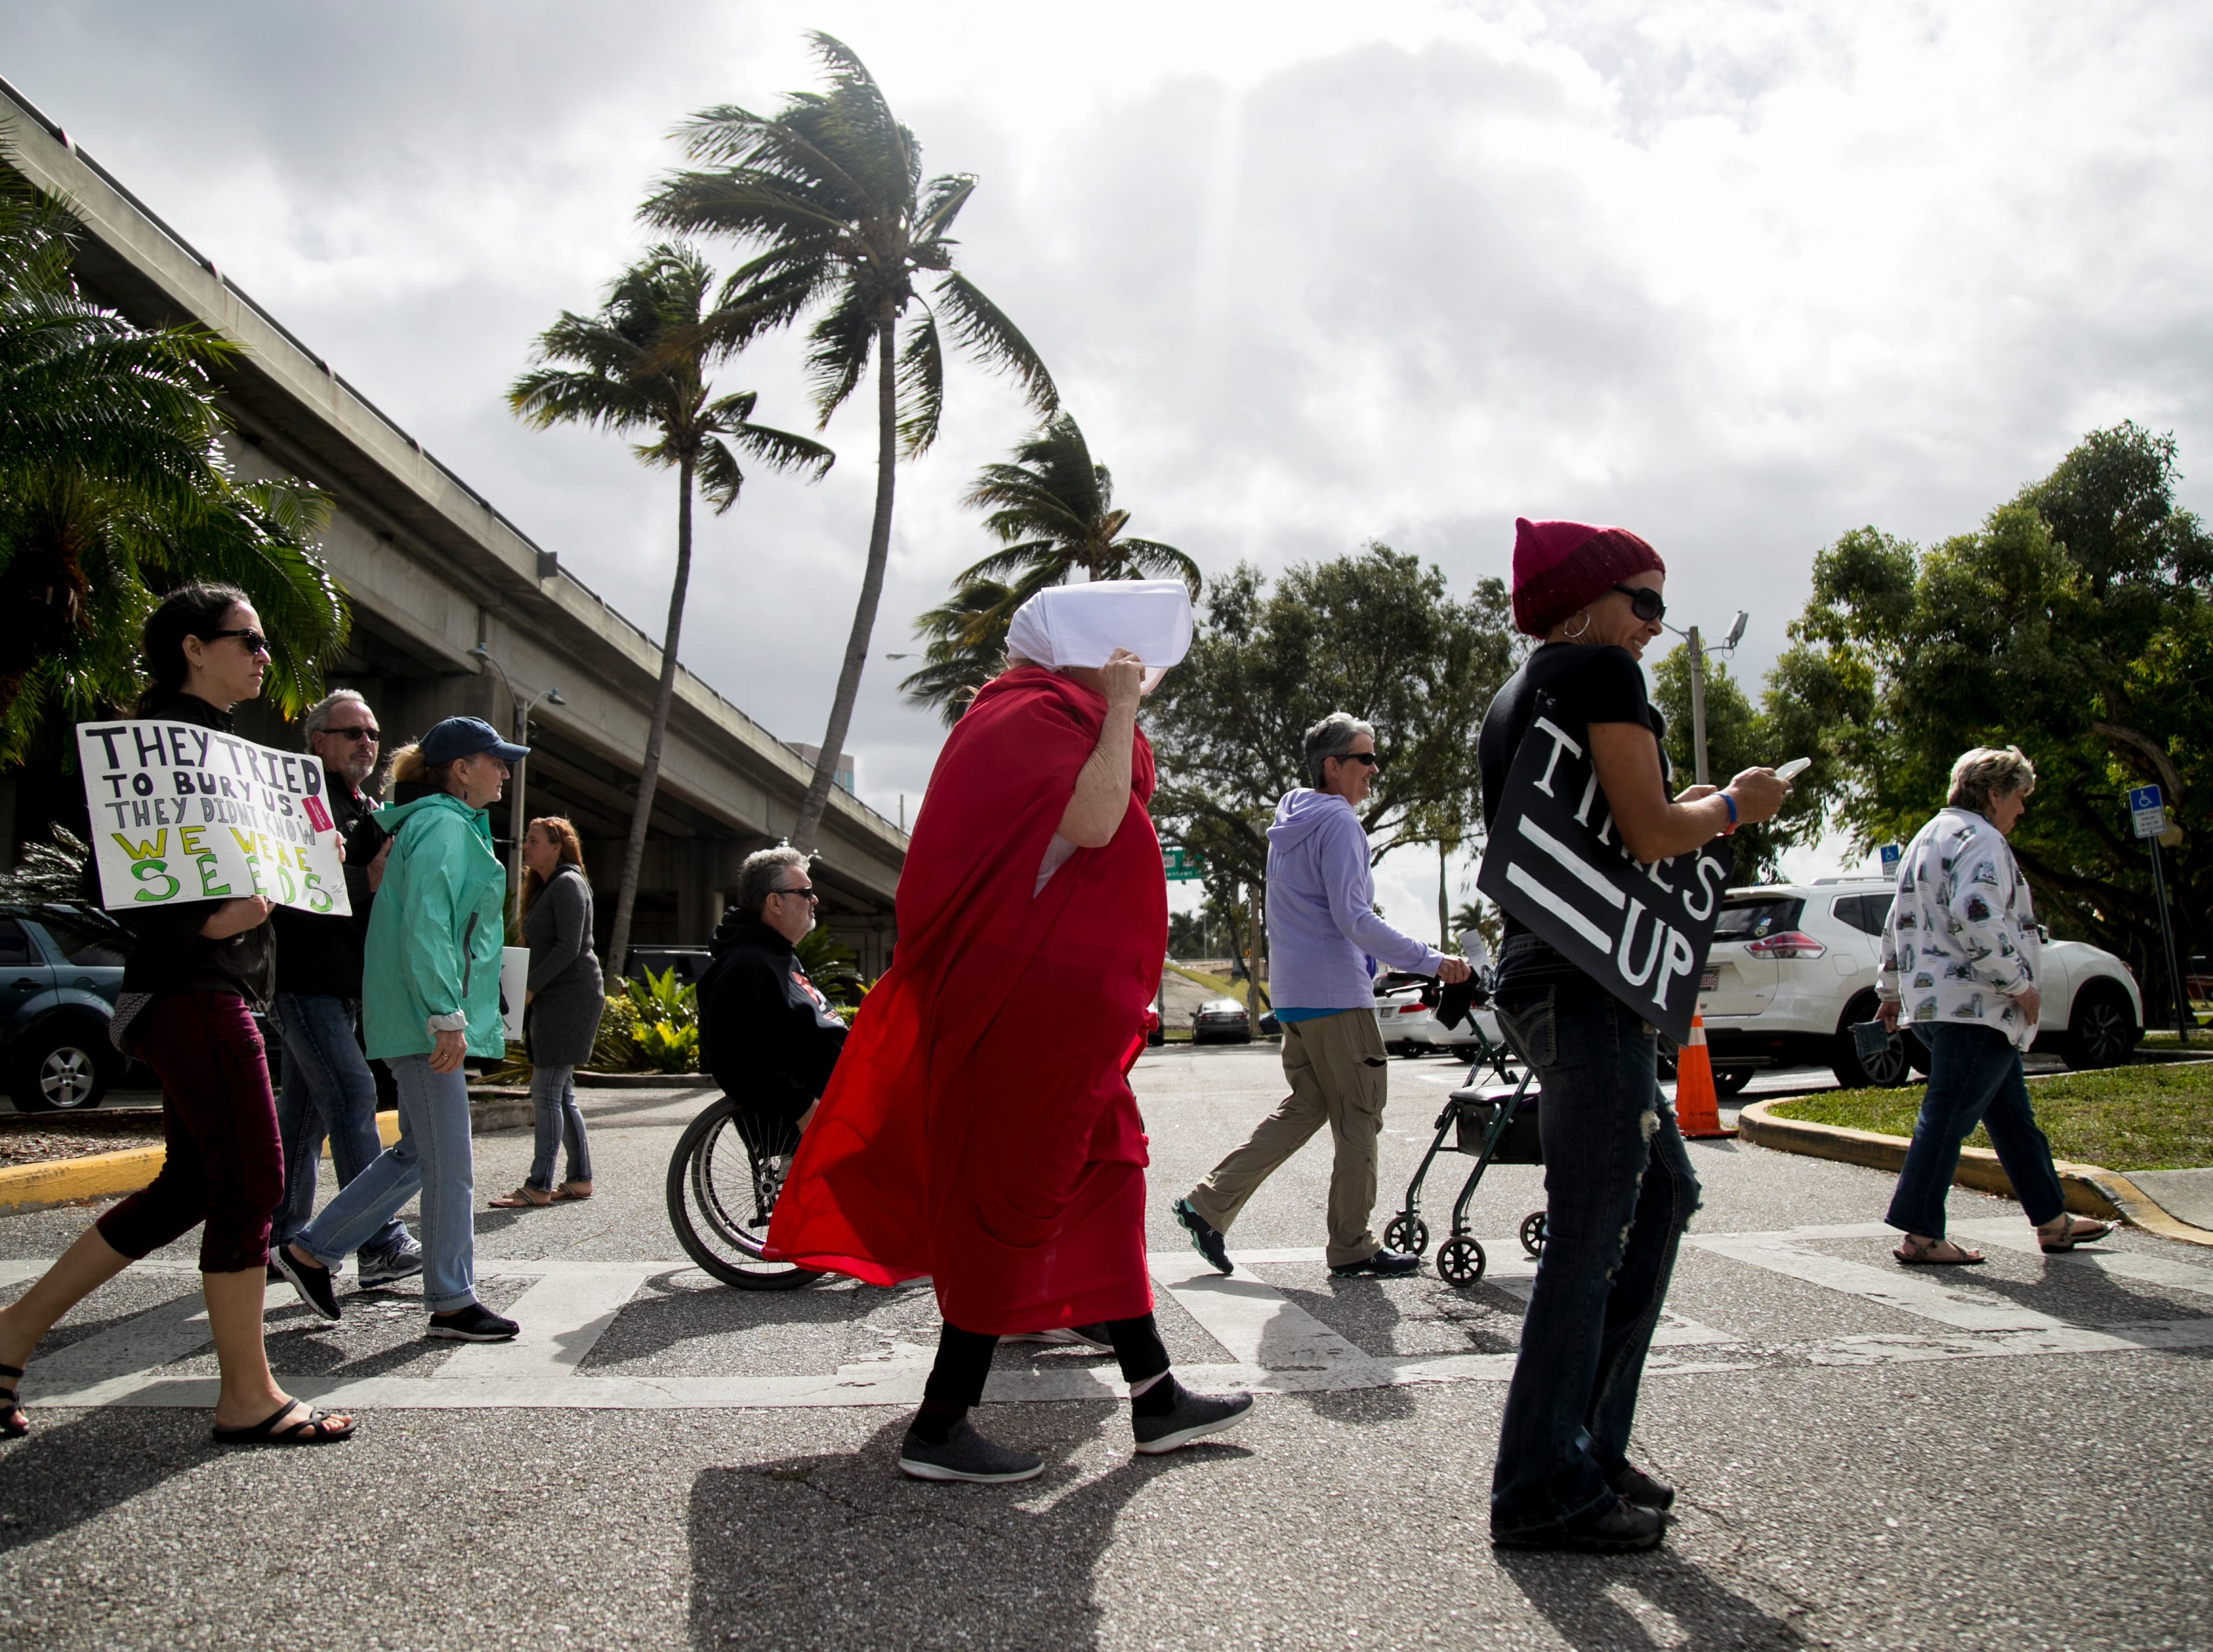 Participants in the Fort Myers Women's March return to Centennial Park after marching through downtown Fort Myers on Sunday, Jan. 20, 2019.